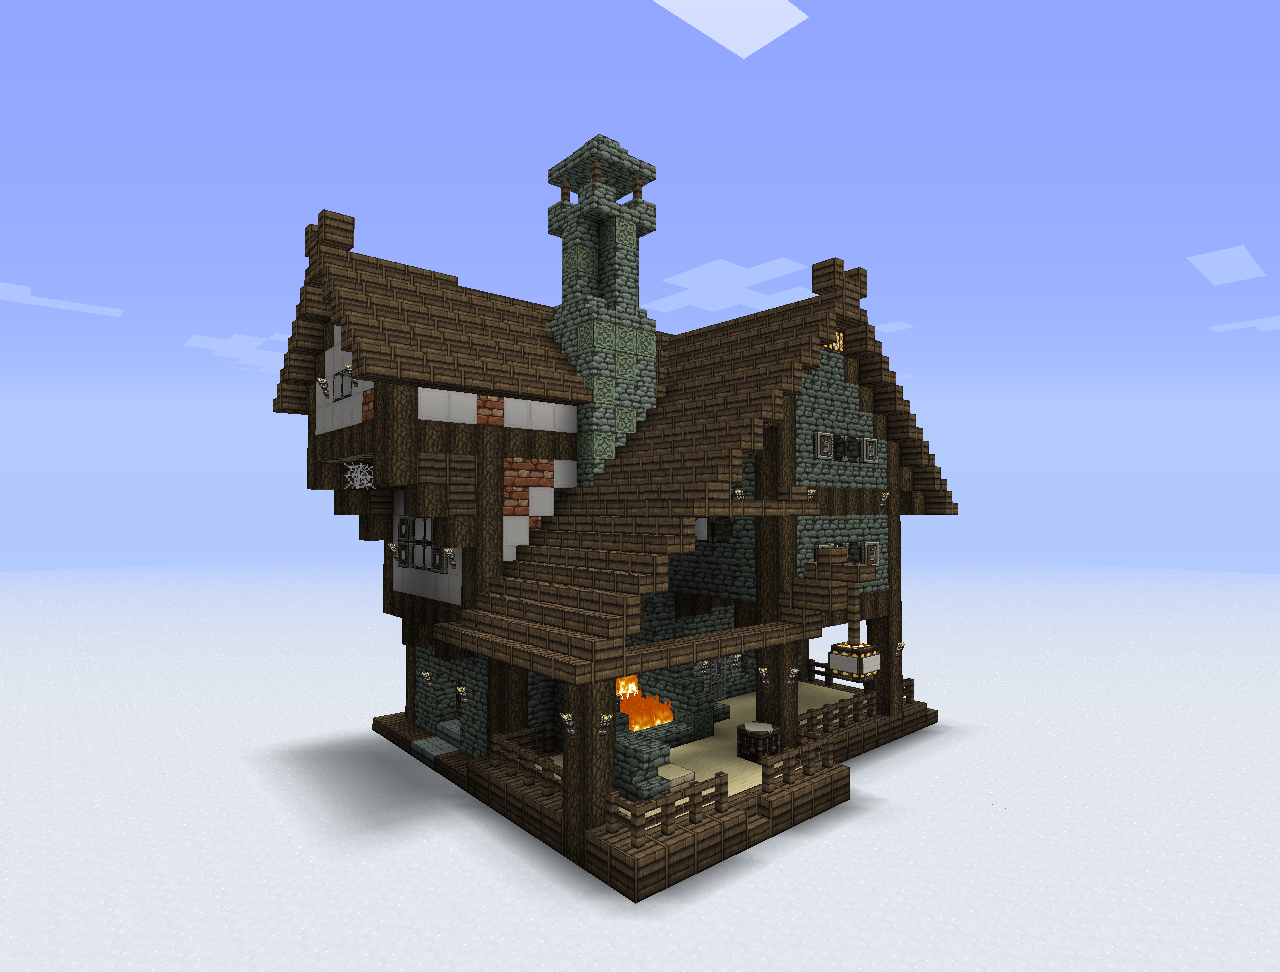 Cool minecraft houses on pinterest minecraft houses for Minecraft home designs